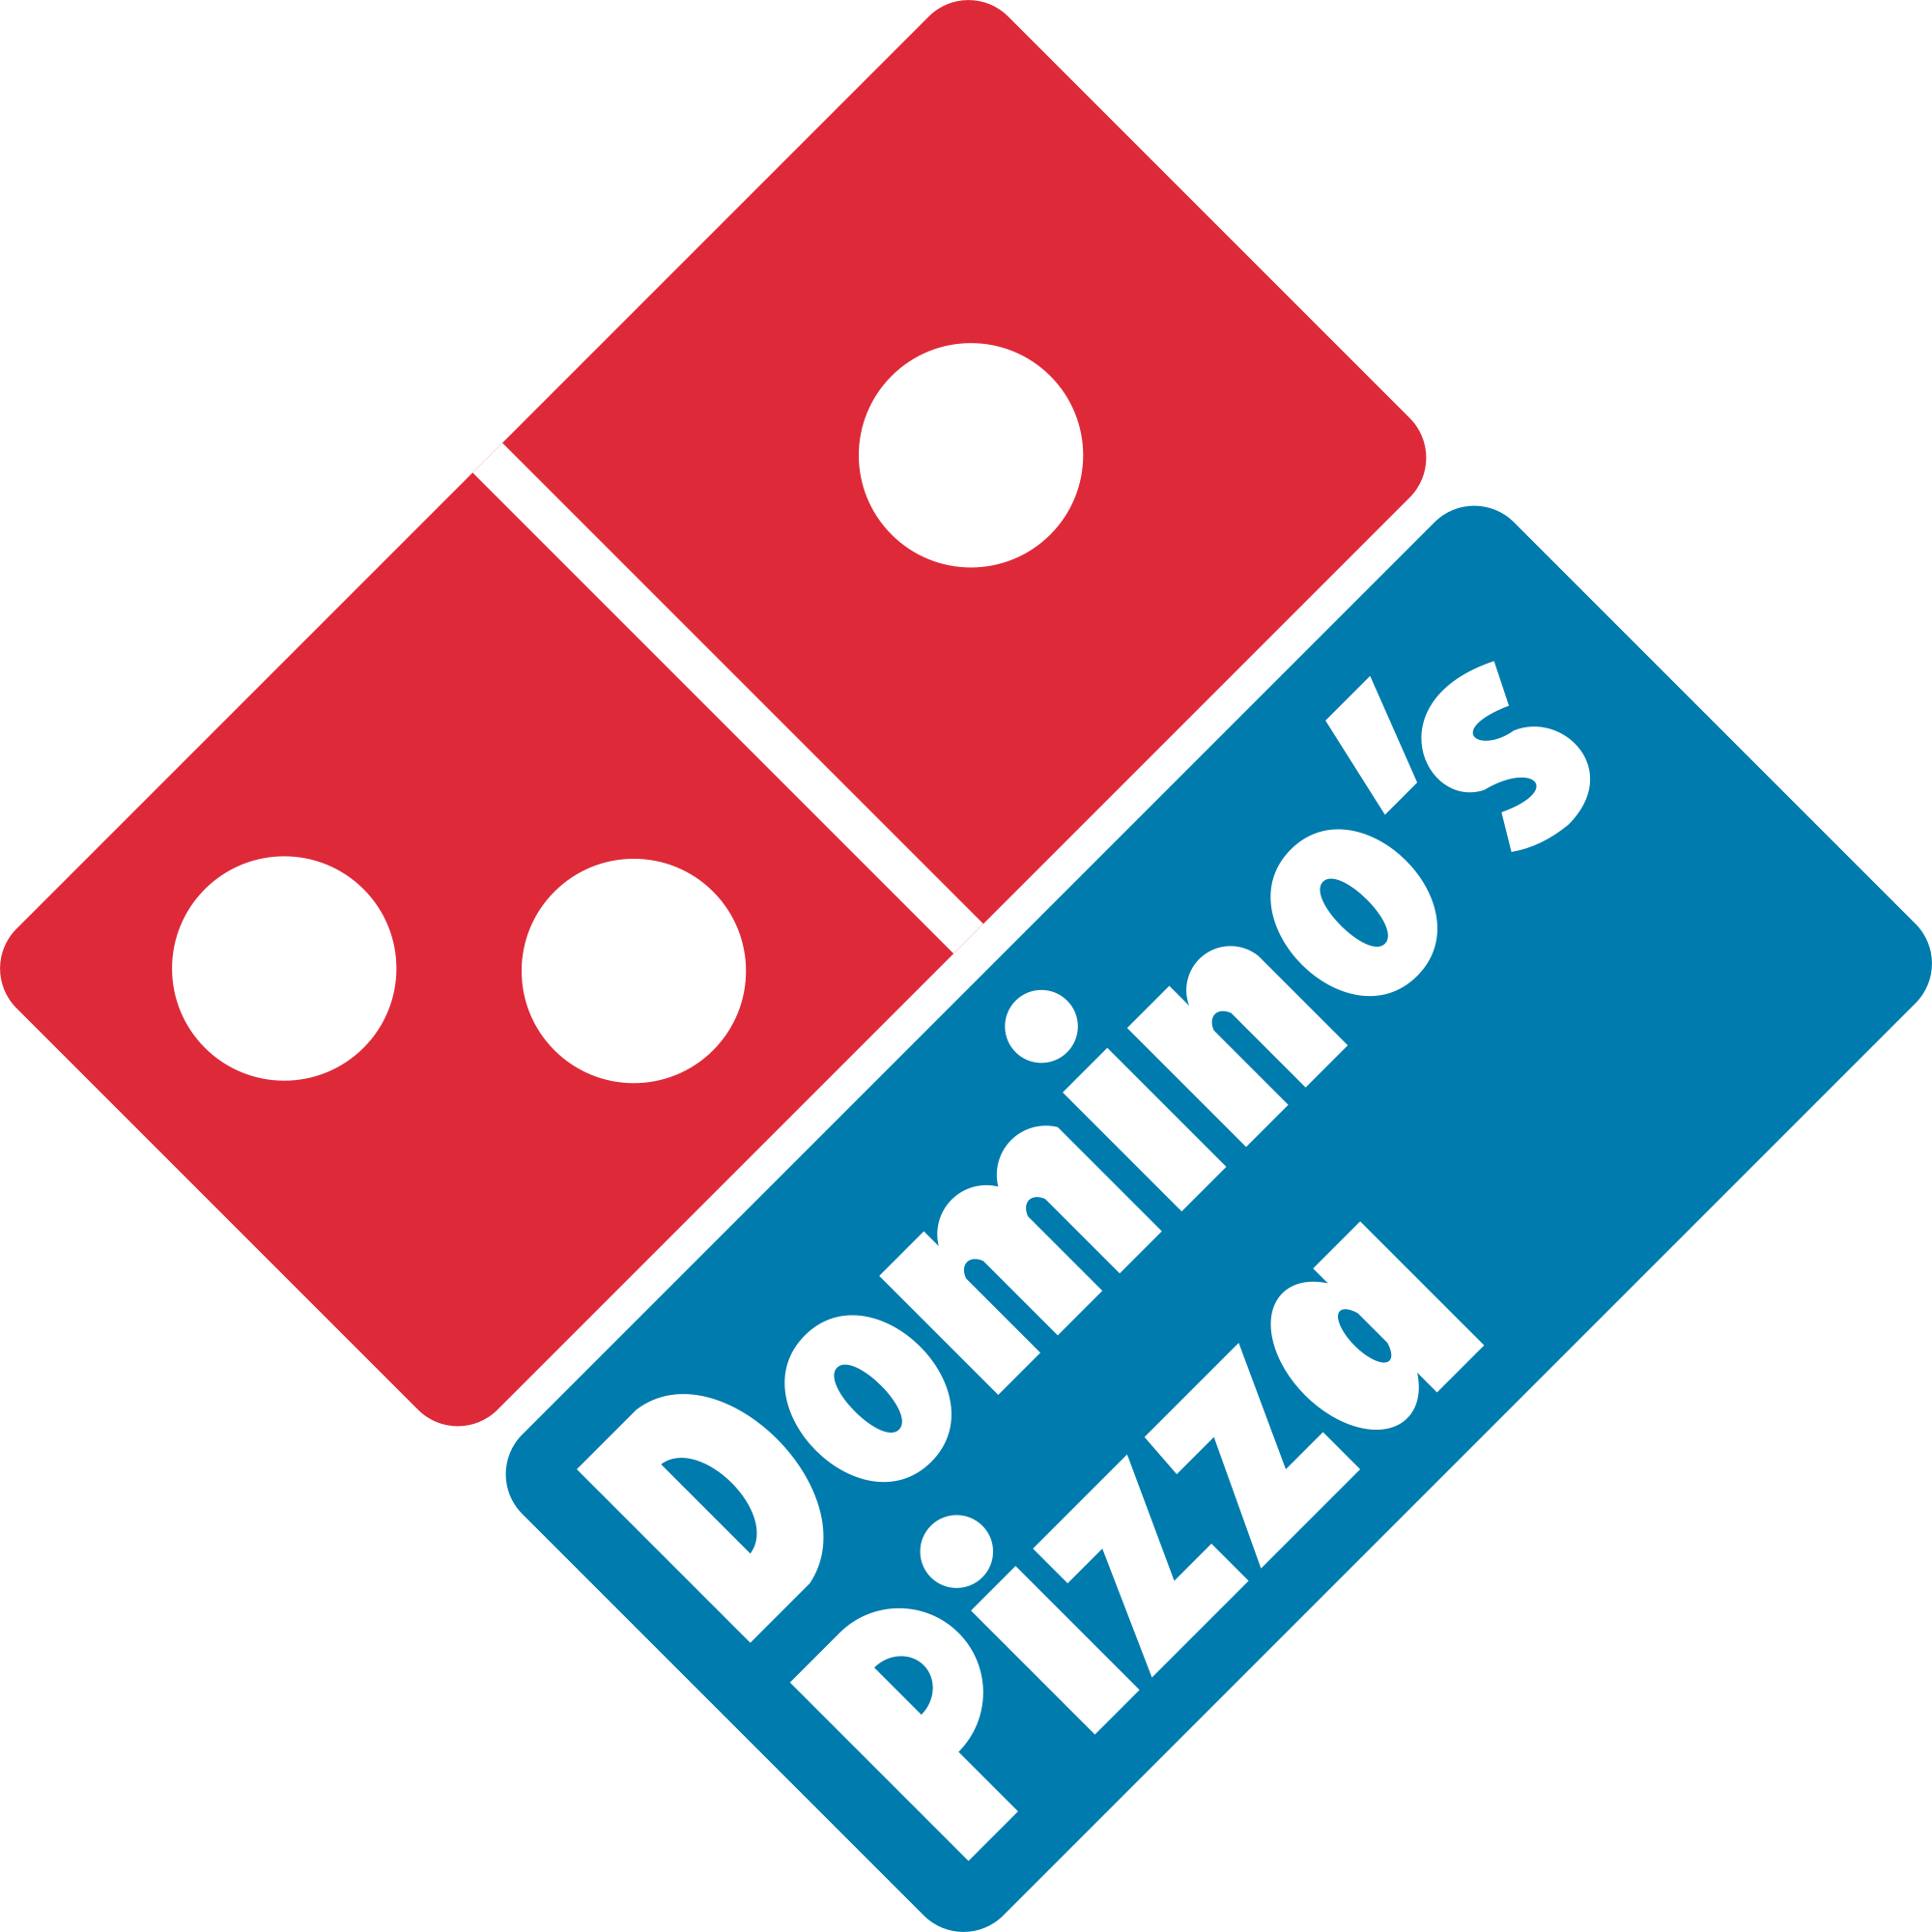 Domino's  10in pizza for $2.99 on May 1st